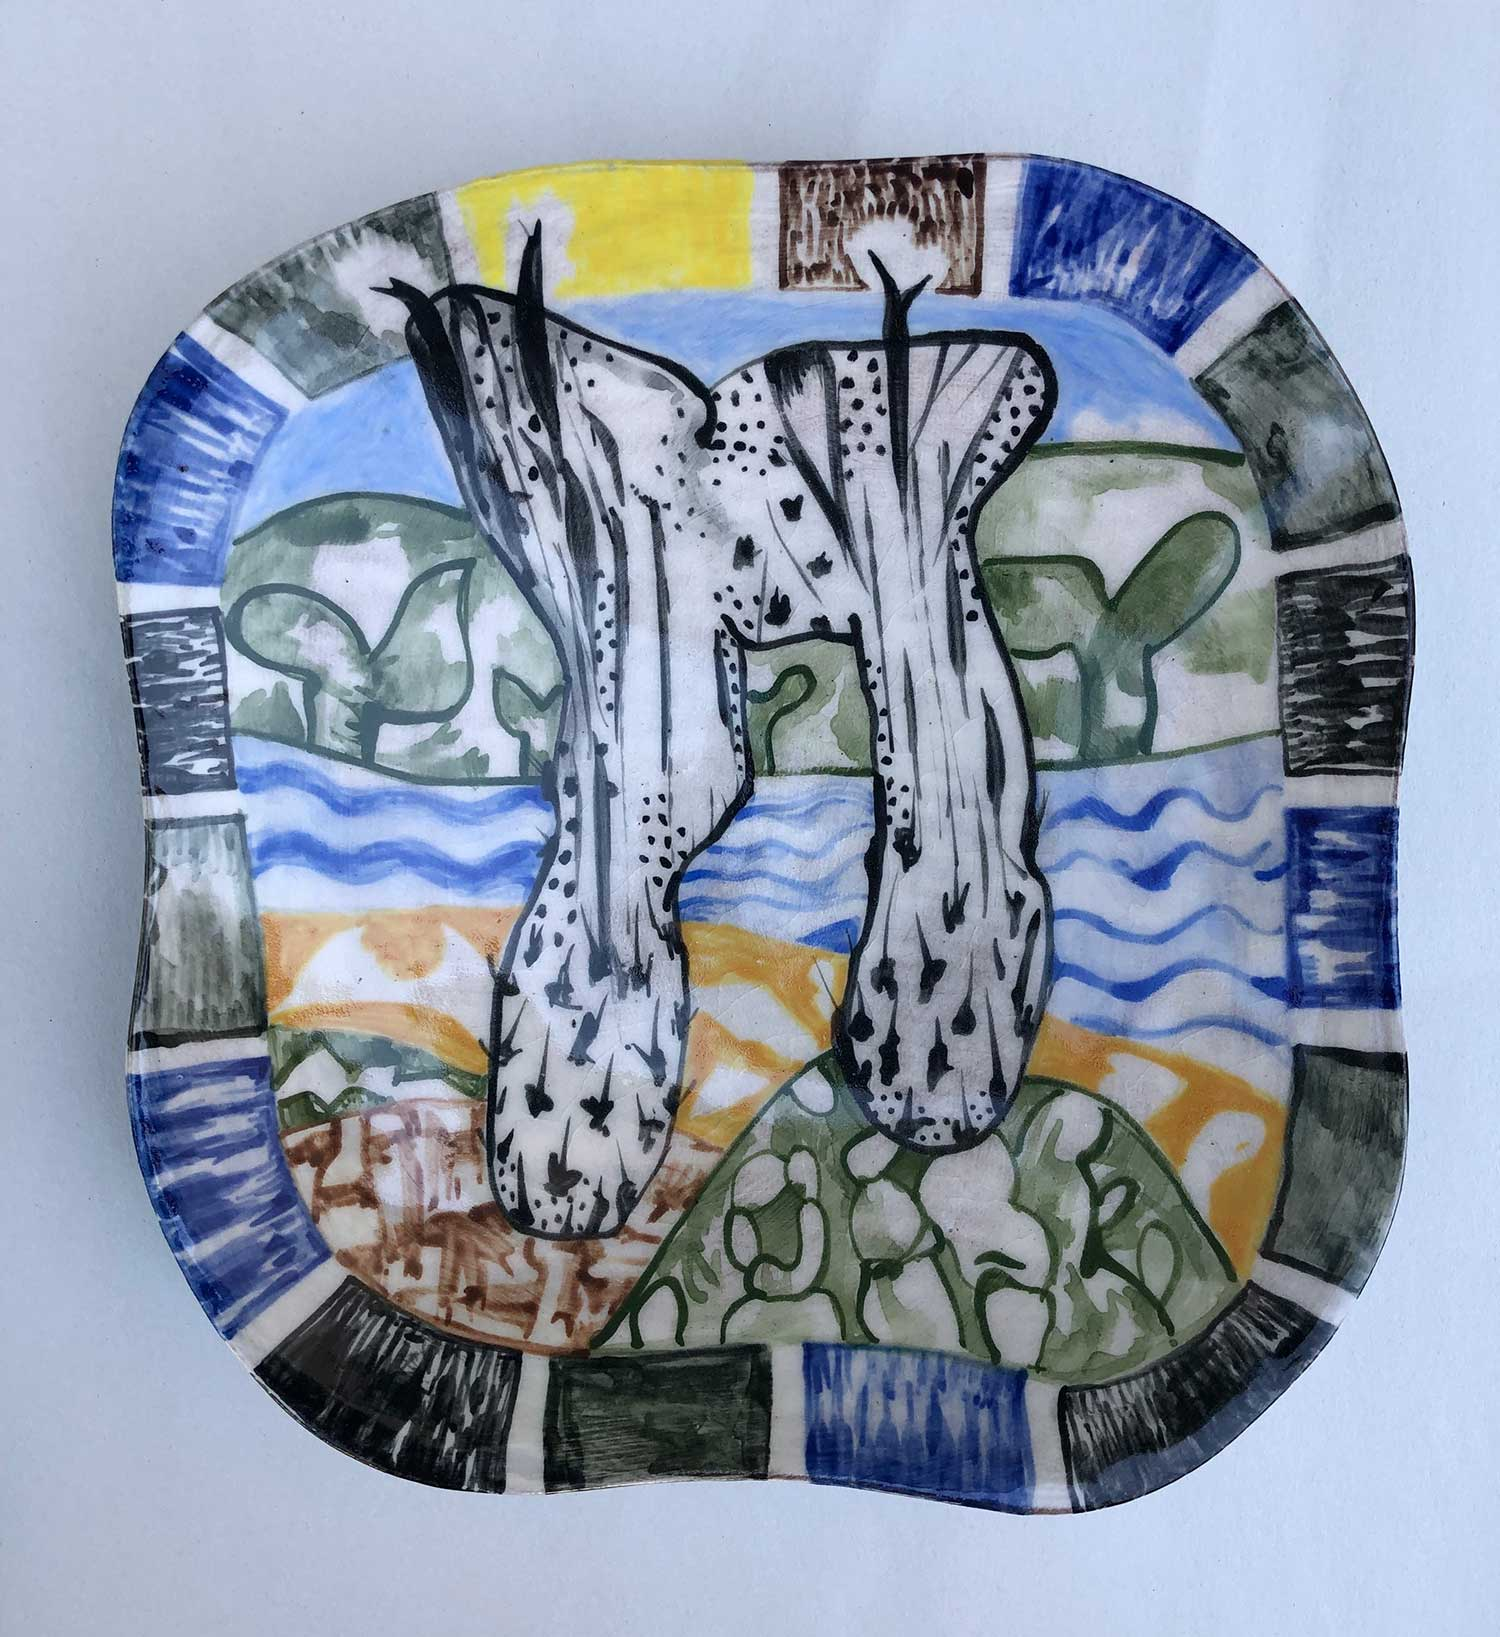 holly_hughes_other_ceramics_plate_site.jpg